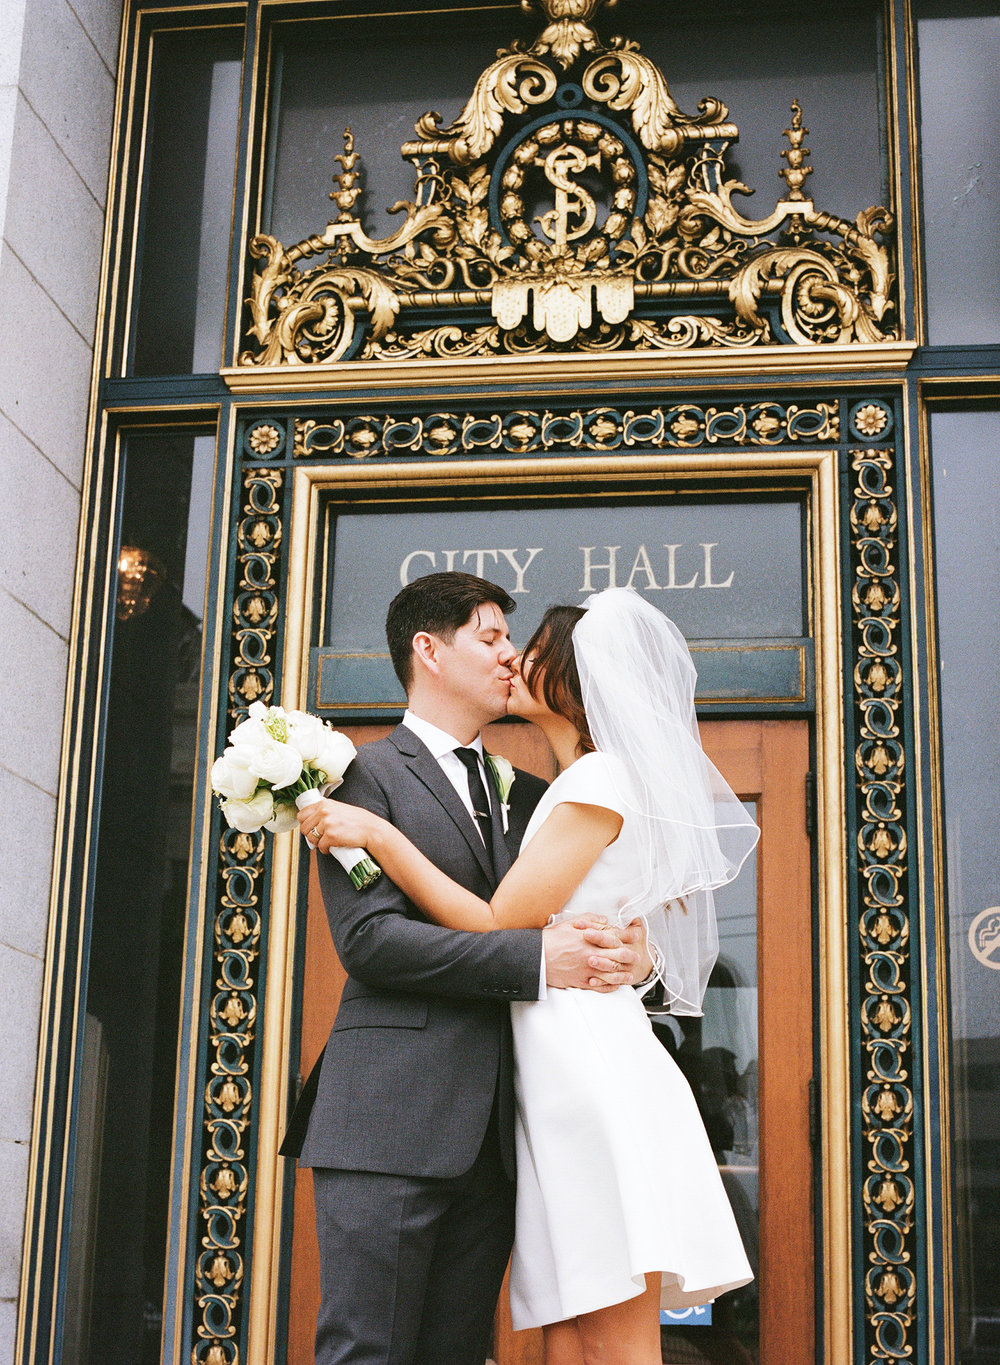 28-city-hall-wedding-sf.jpg